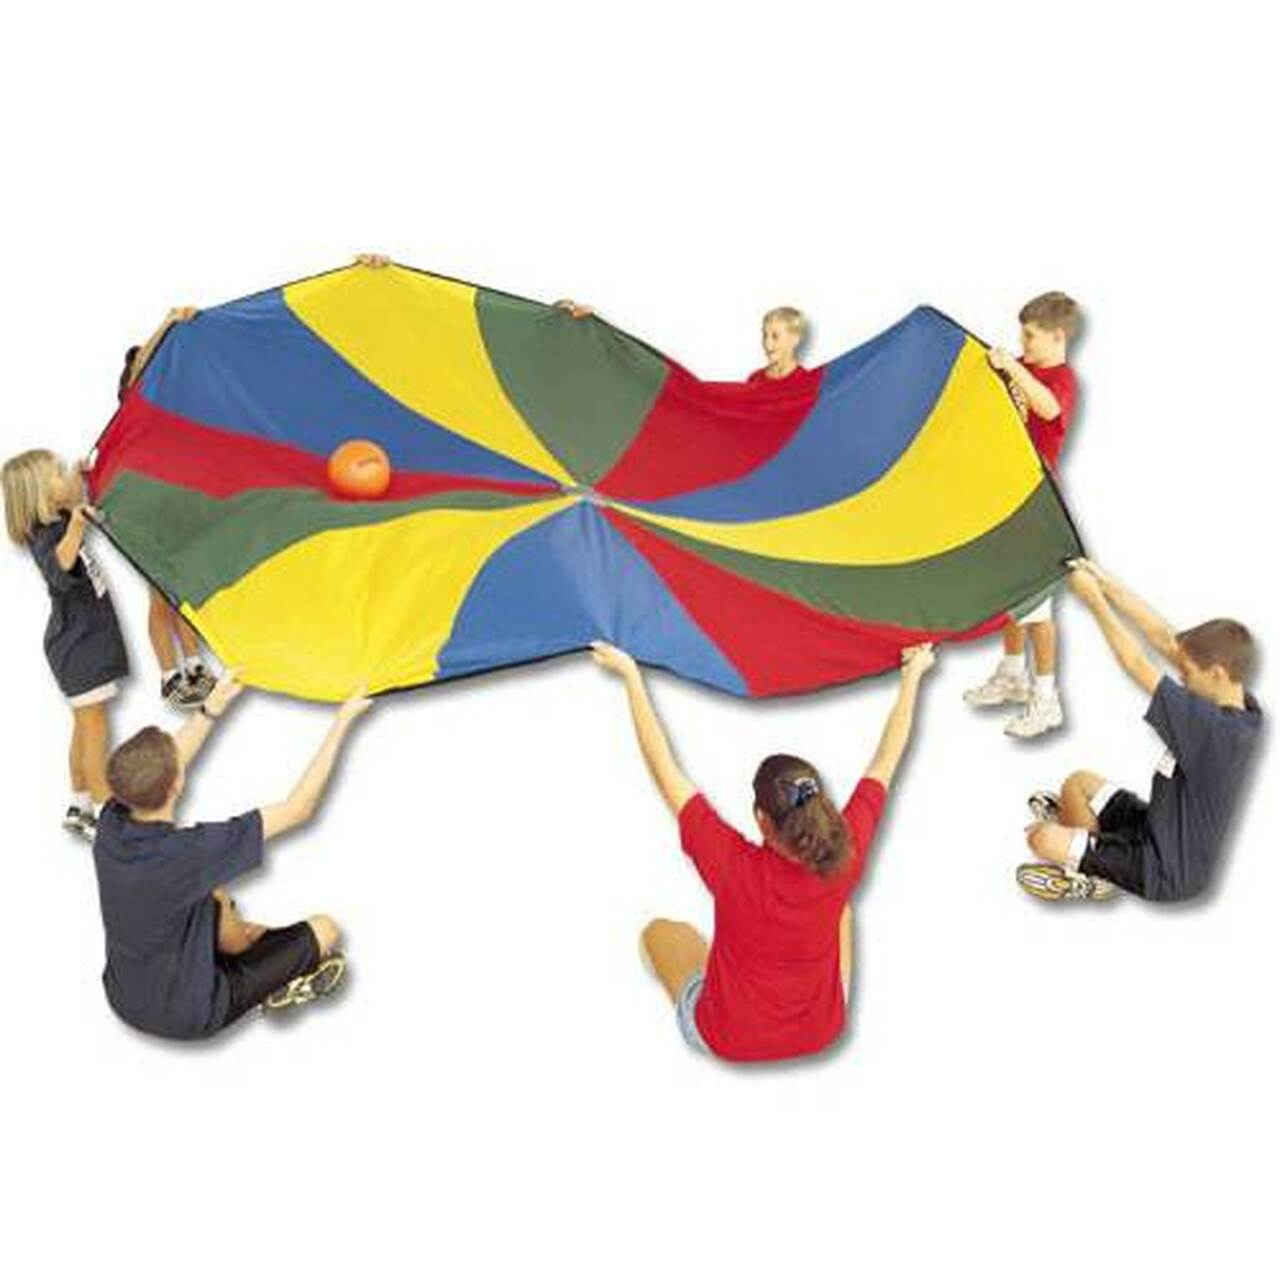 US Games Deluxe Parachute